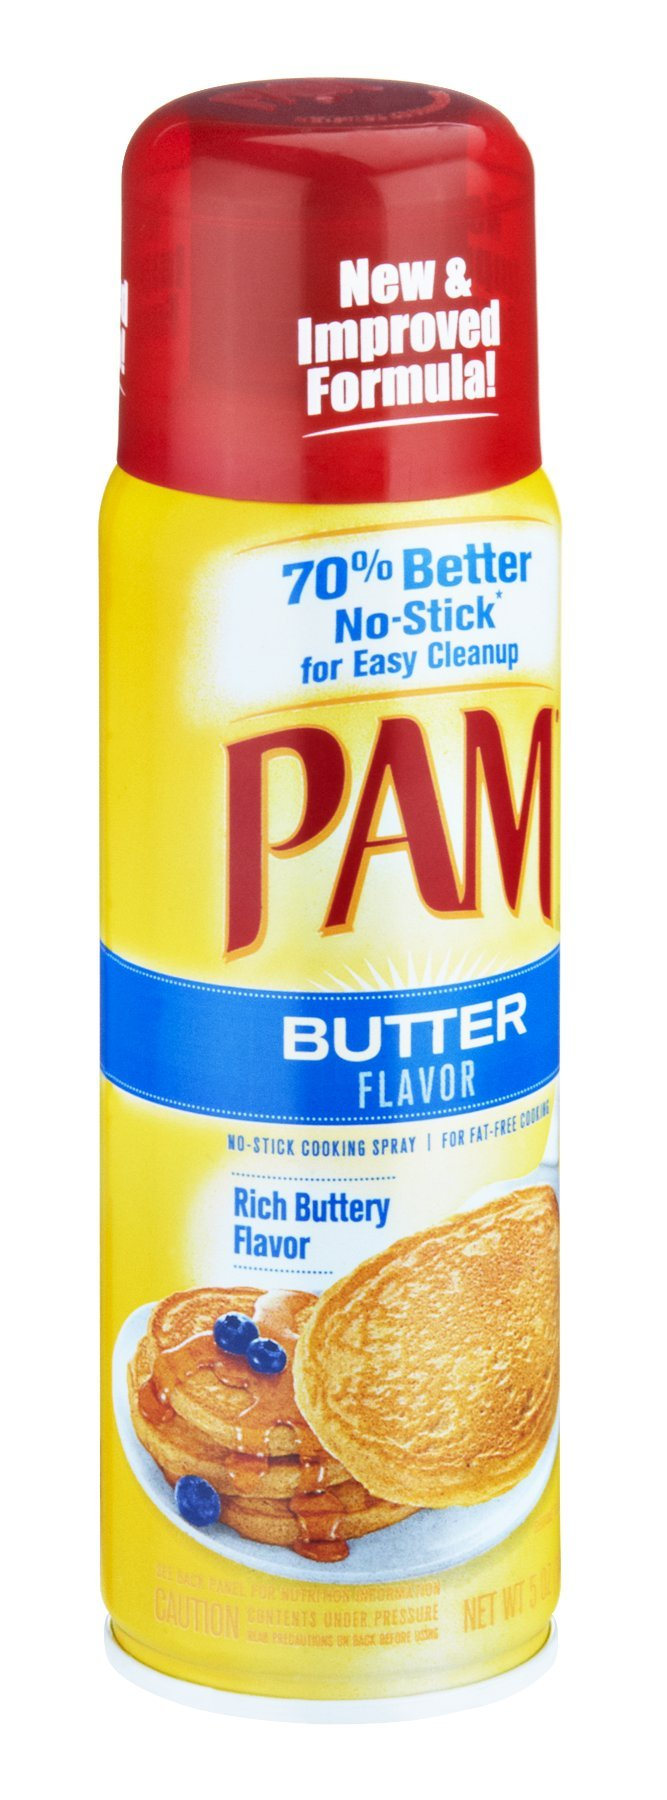 Pam Butter Flavor No-Stick Cooking Spray 5 OZ (Pack of 24)